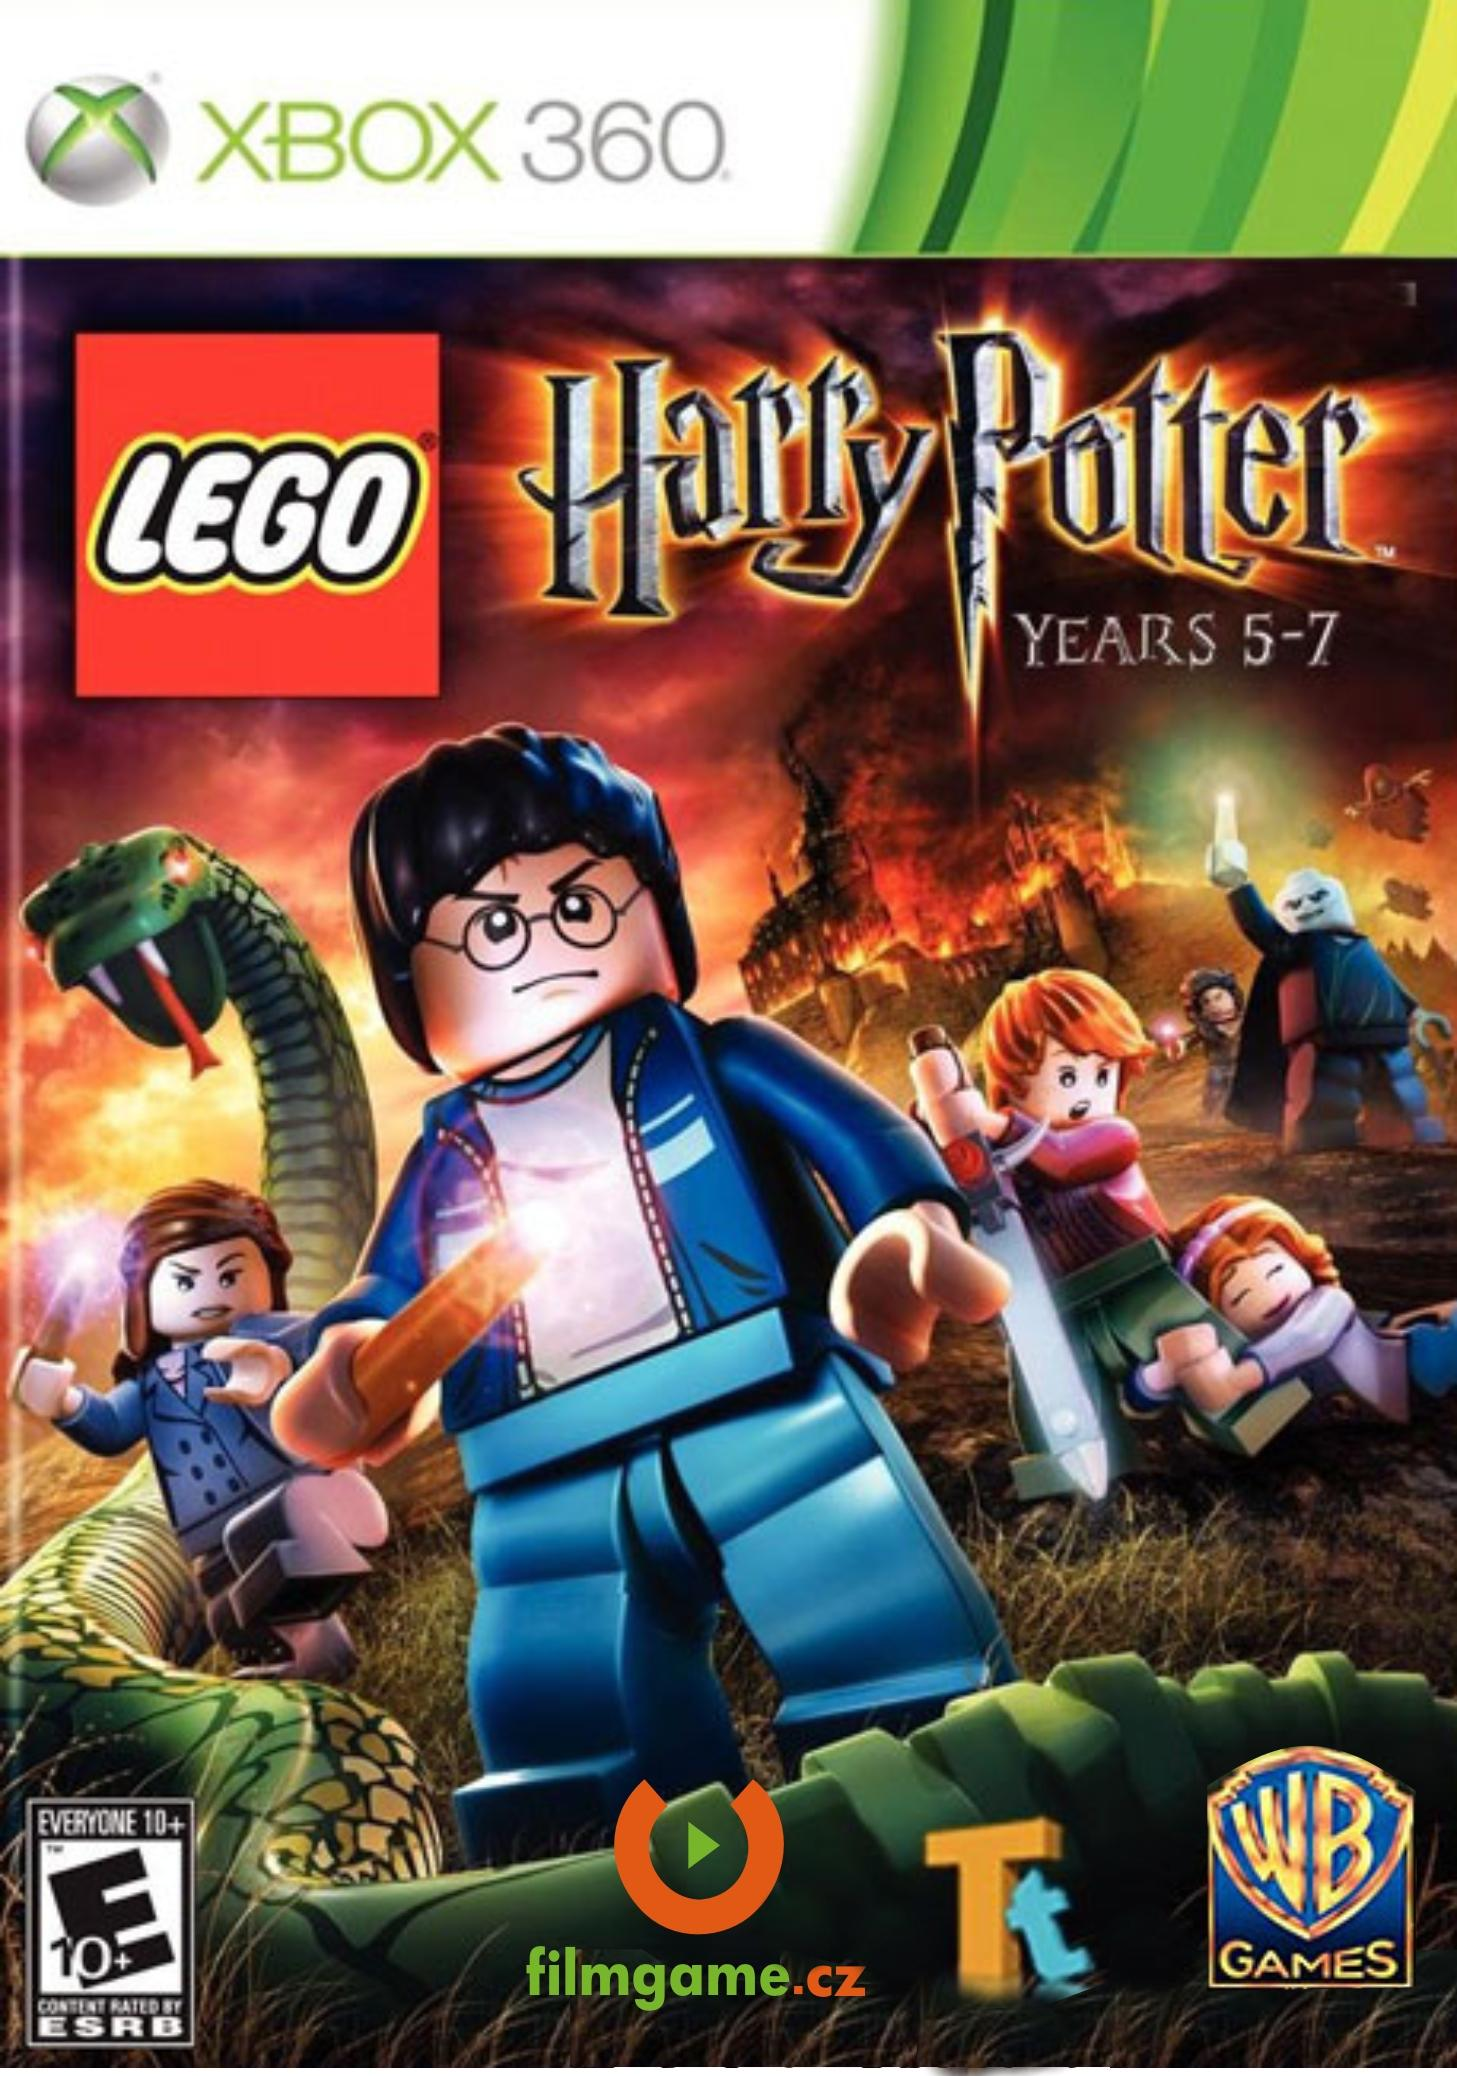 LEGO HARRY POTTER: YEARS 5-7 - X360